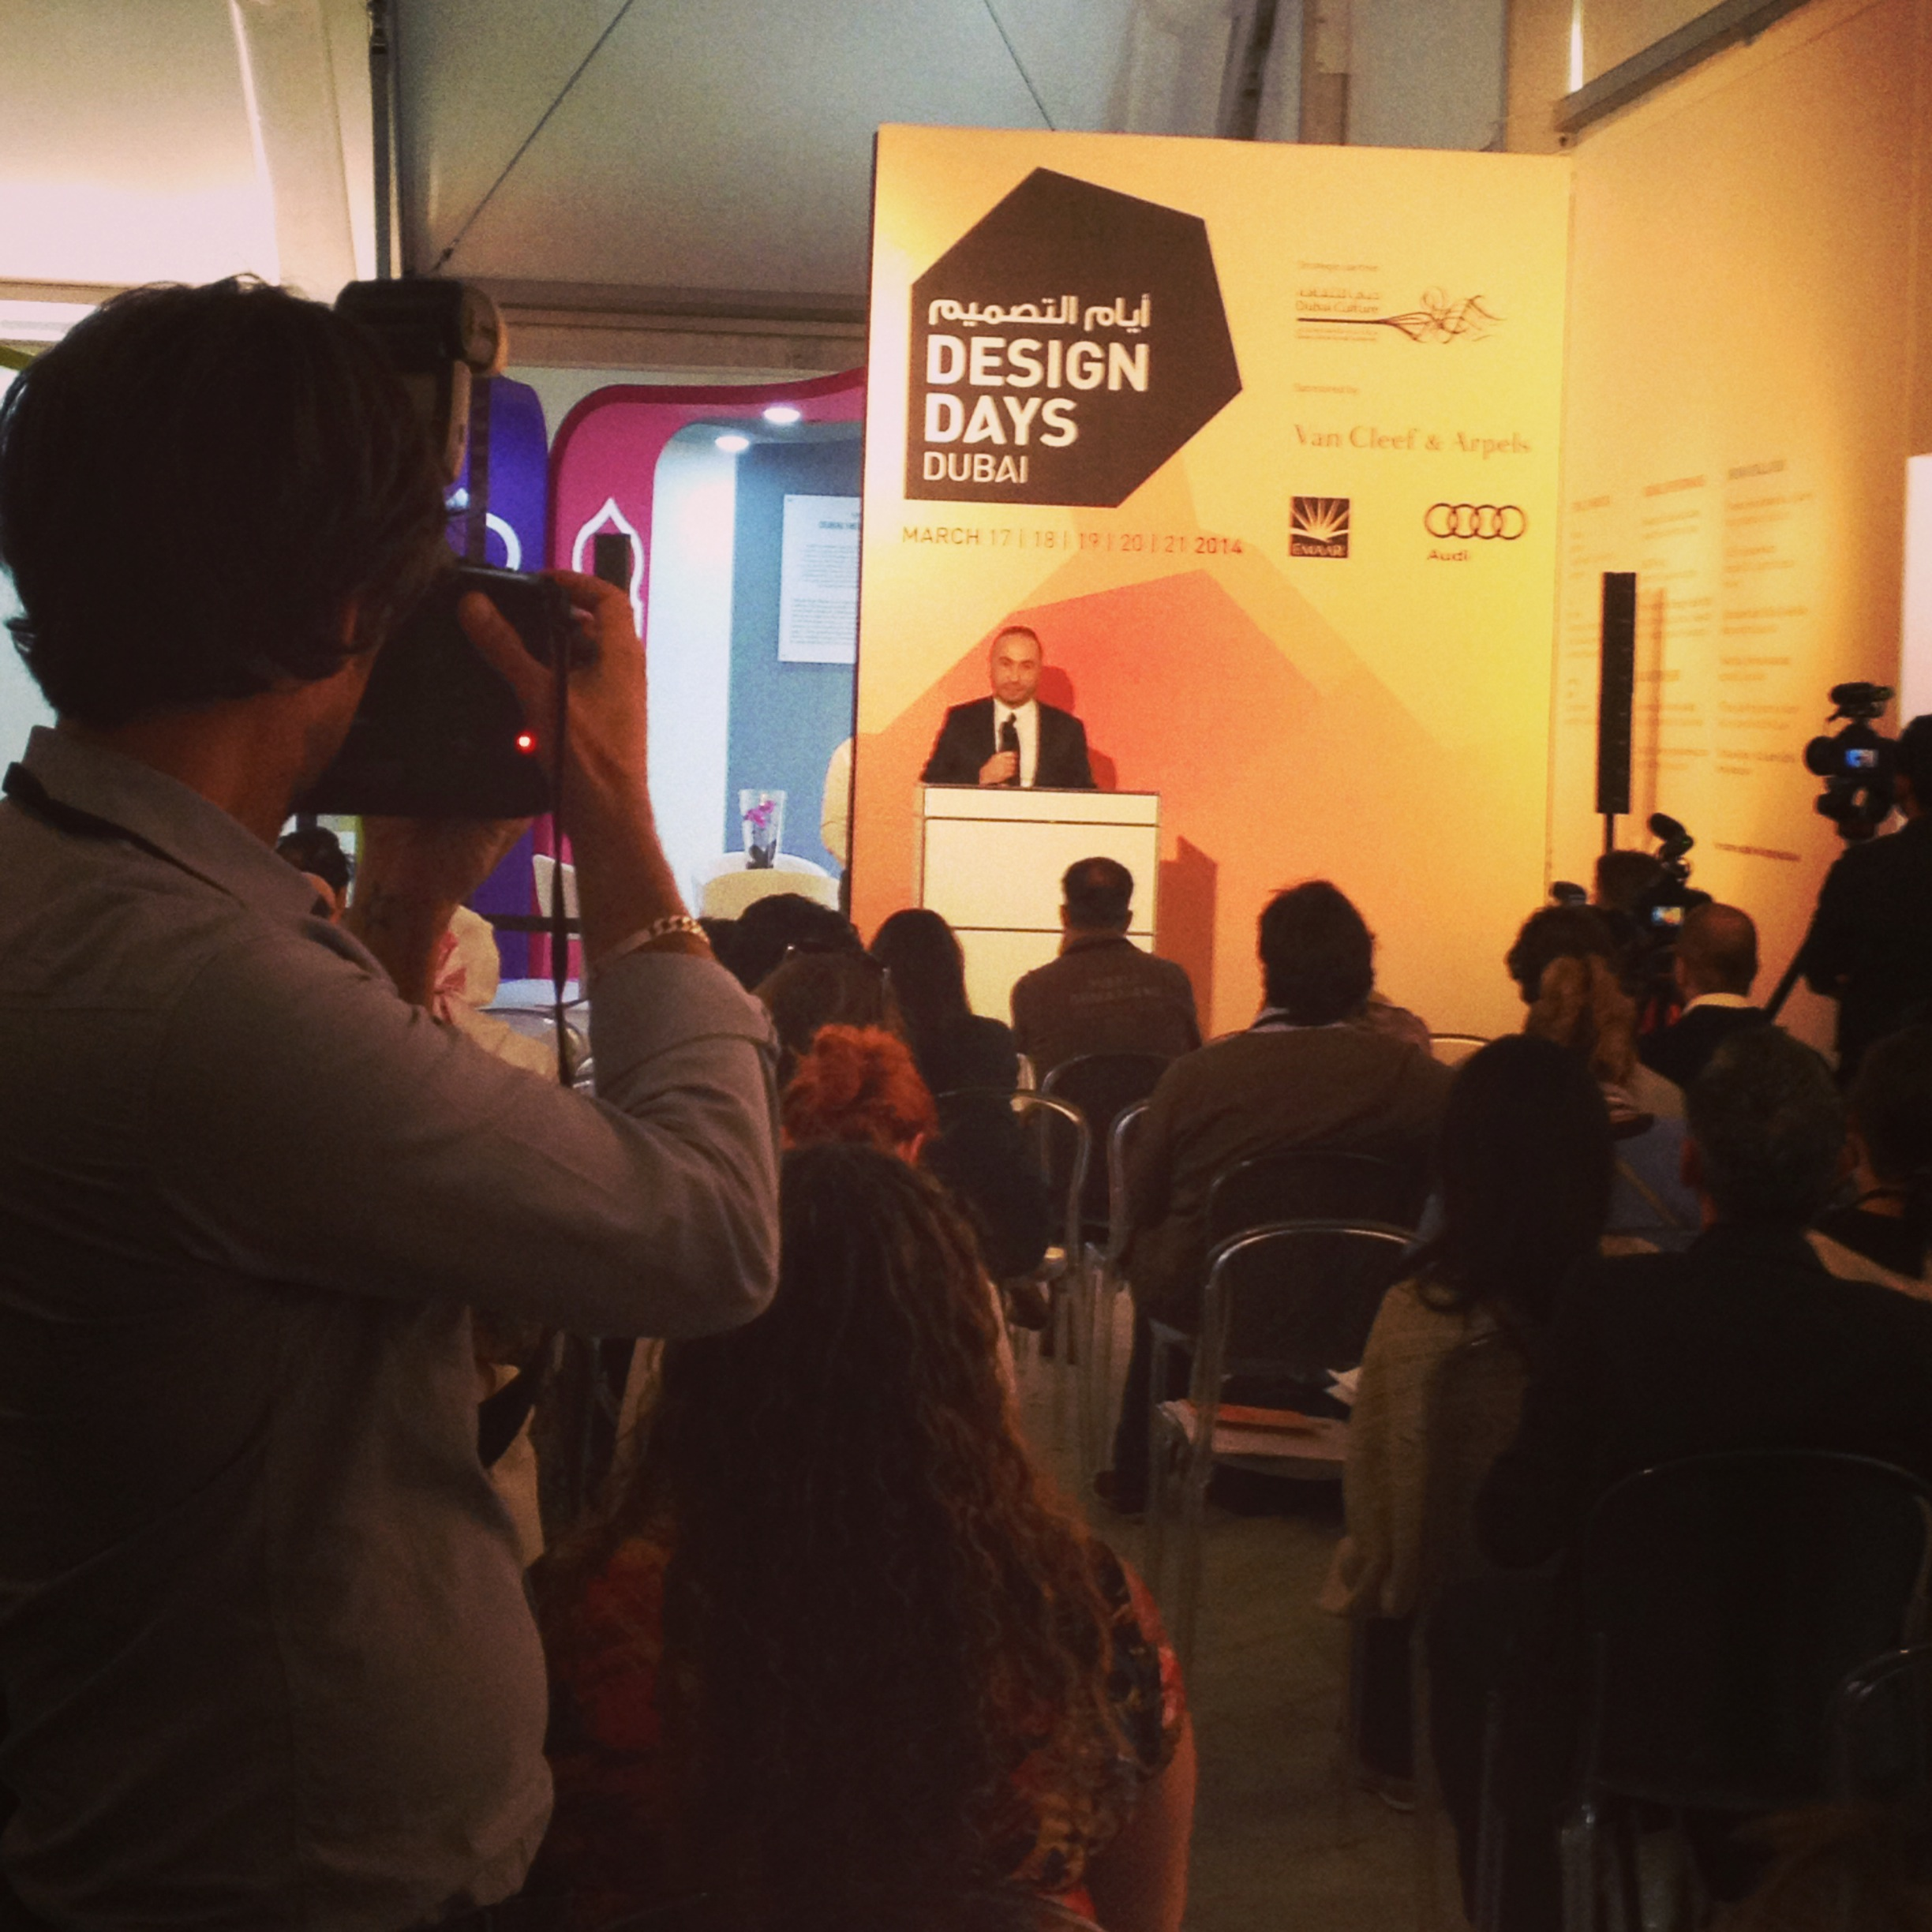 Design Days Dubai Director Cyril Zammit talking at the press opening